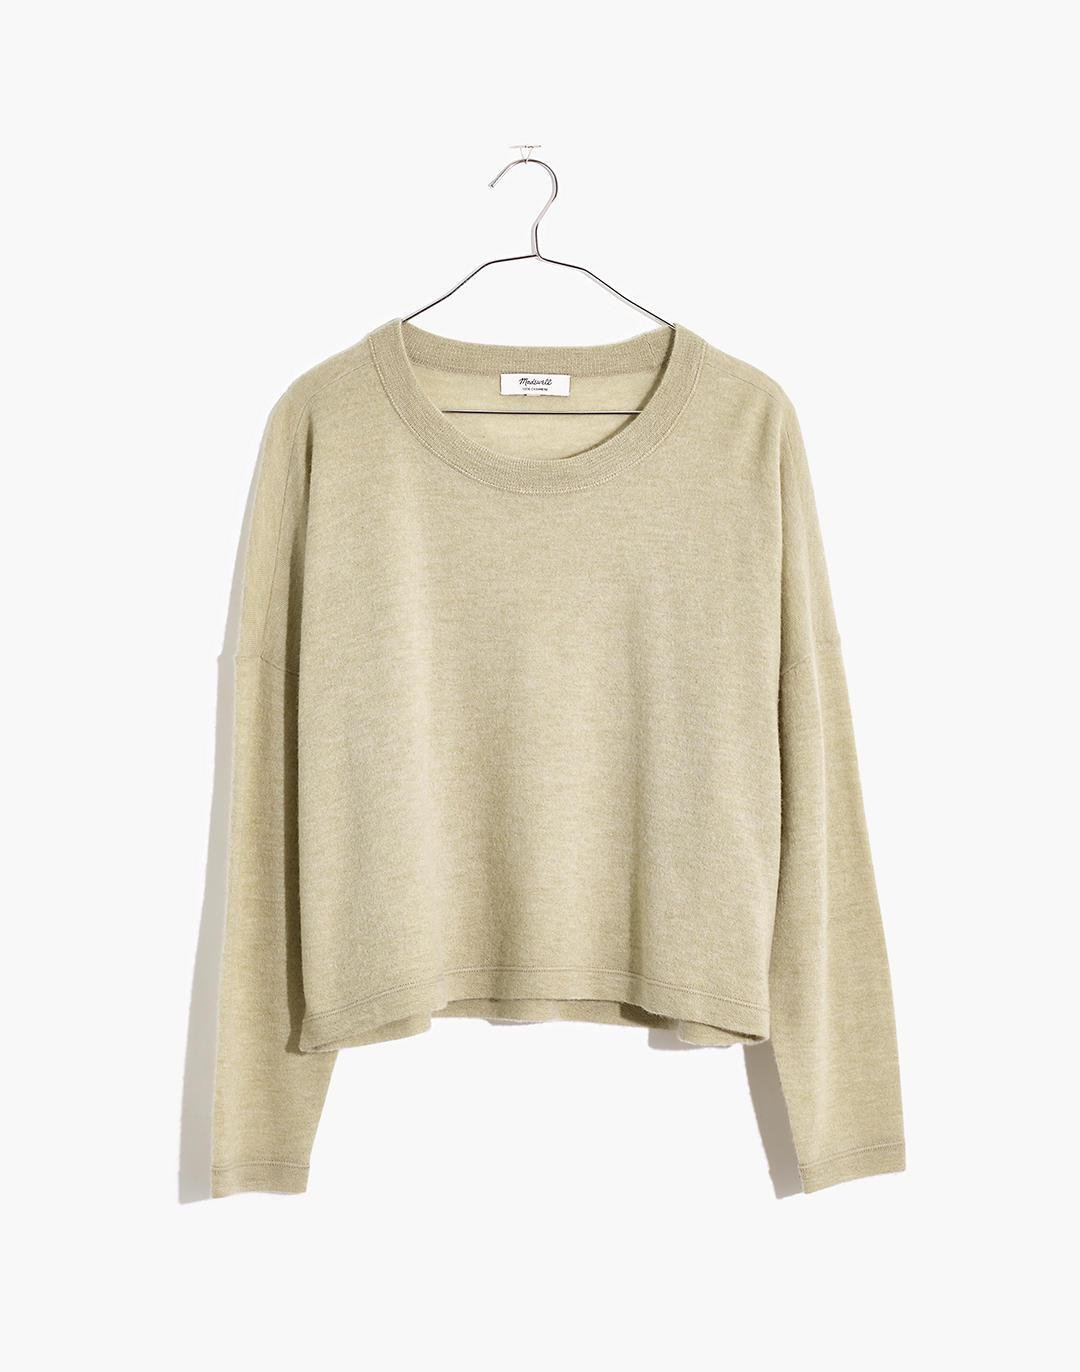 (Re)sponsible Weightless Cashmere Pullover Sweater